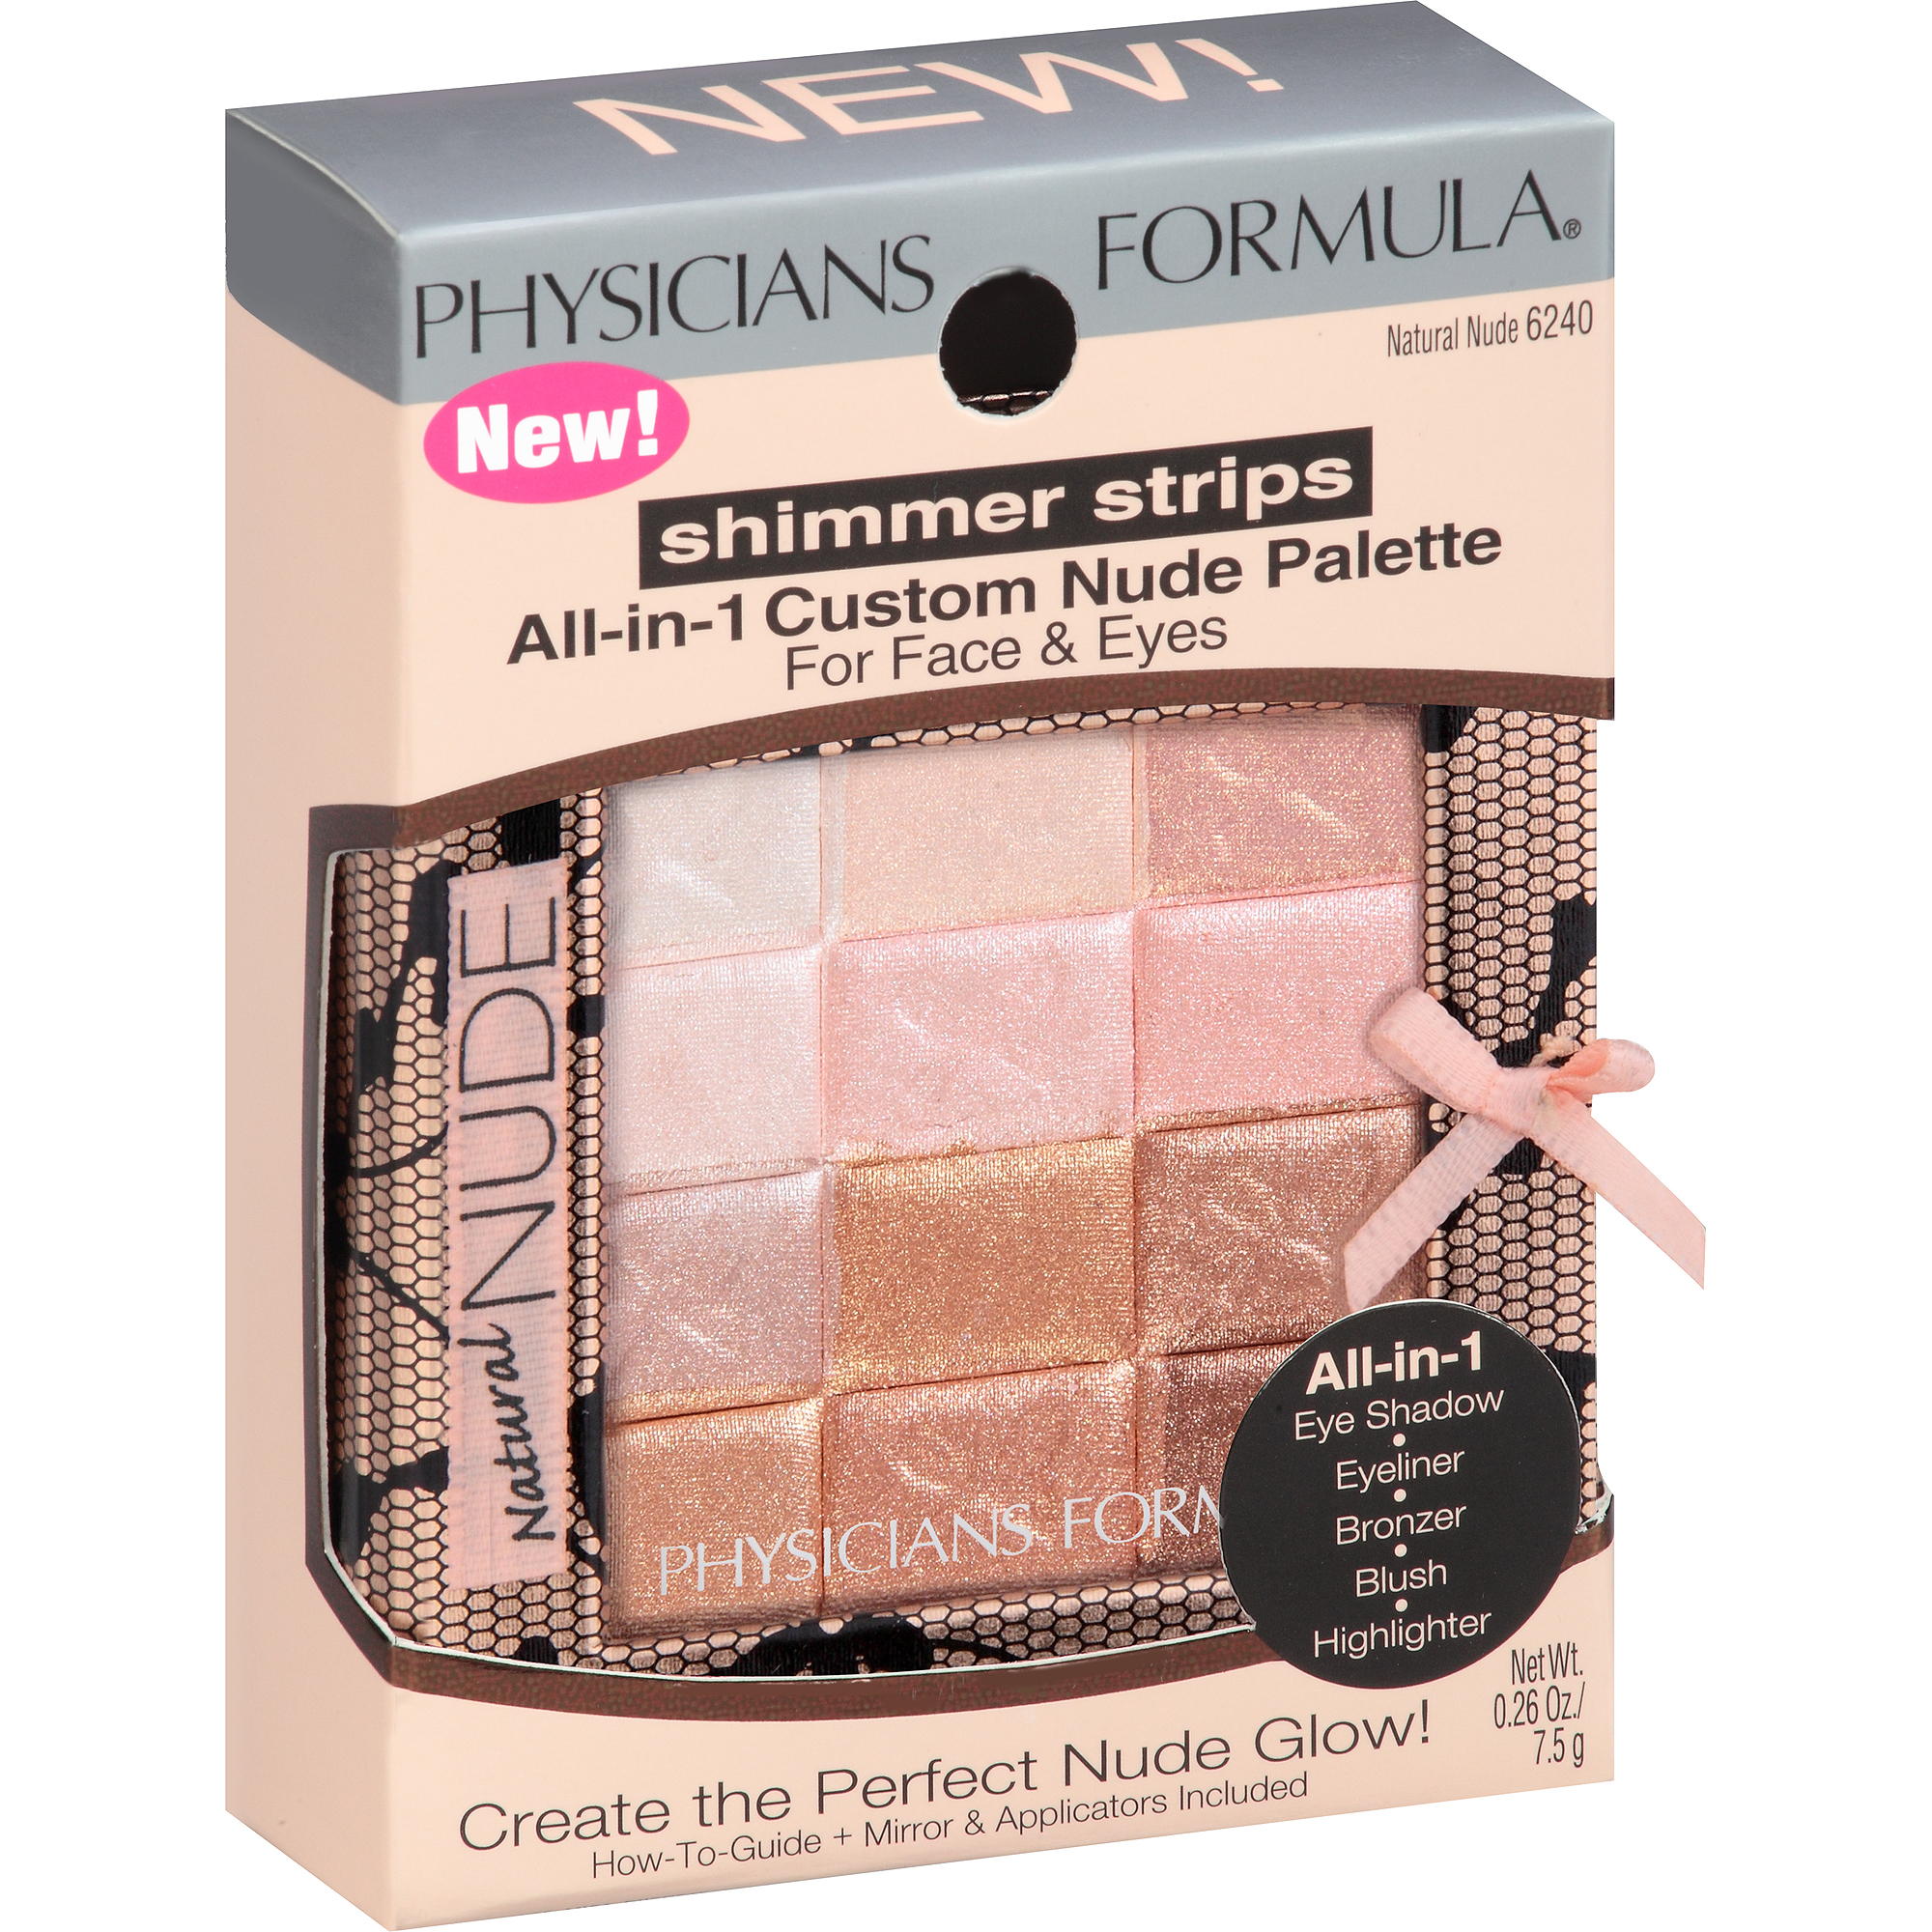 Physicians Formula Shimmer Strips All-in-One Custom Palette for Face & Eyes, 6240 Natural Nude, 0.26 oz